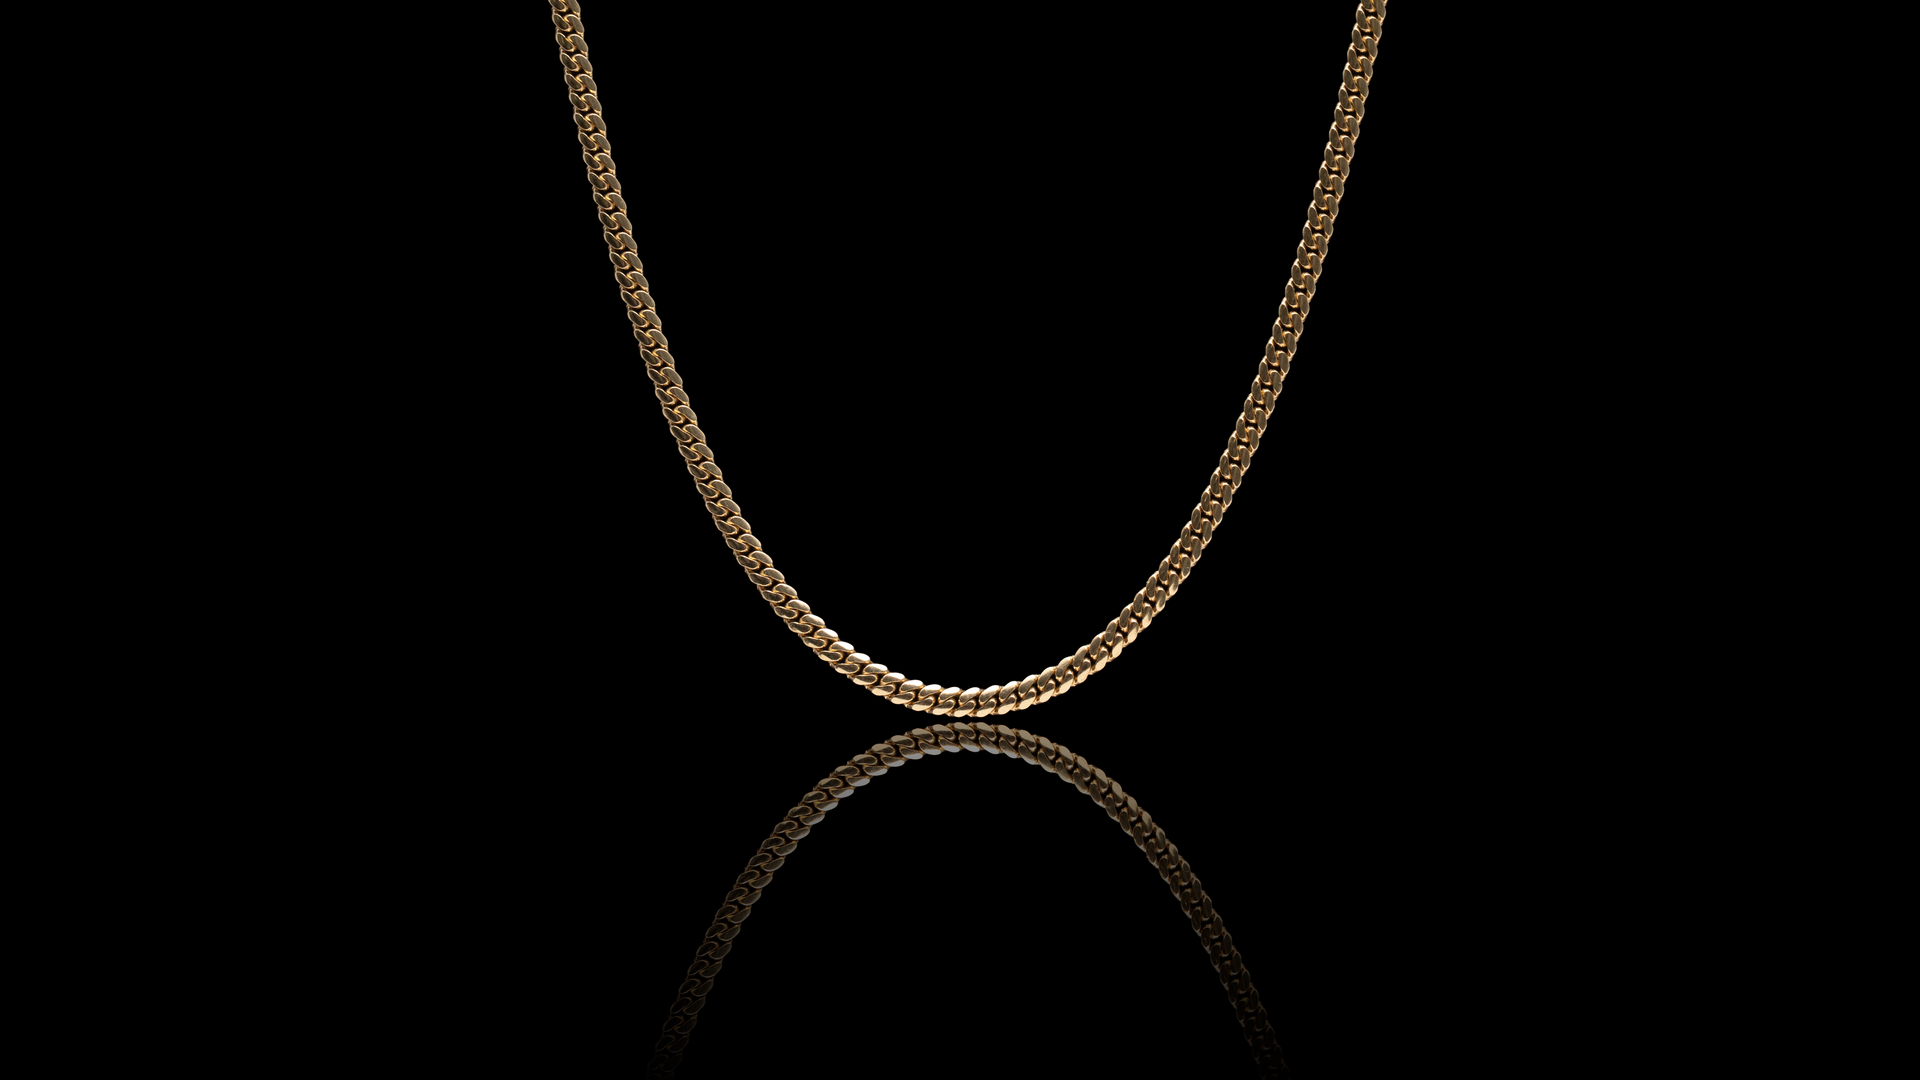 [SPECIAL] 14K Yellow Gold Cuban Link Chain